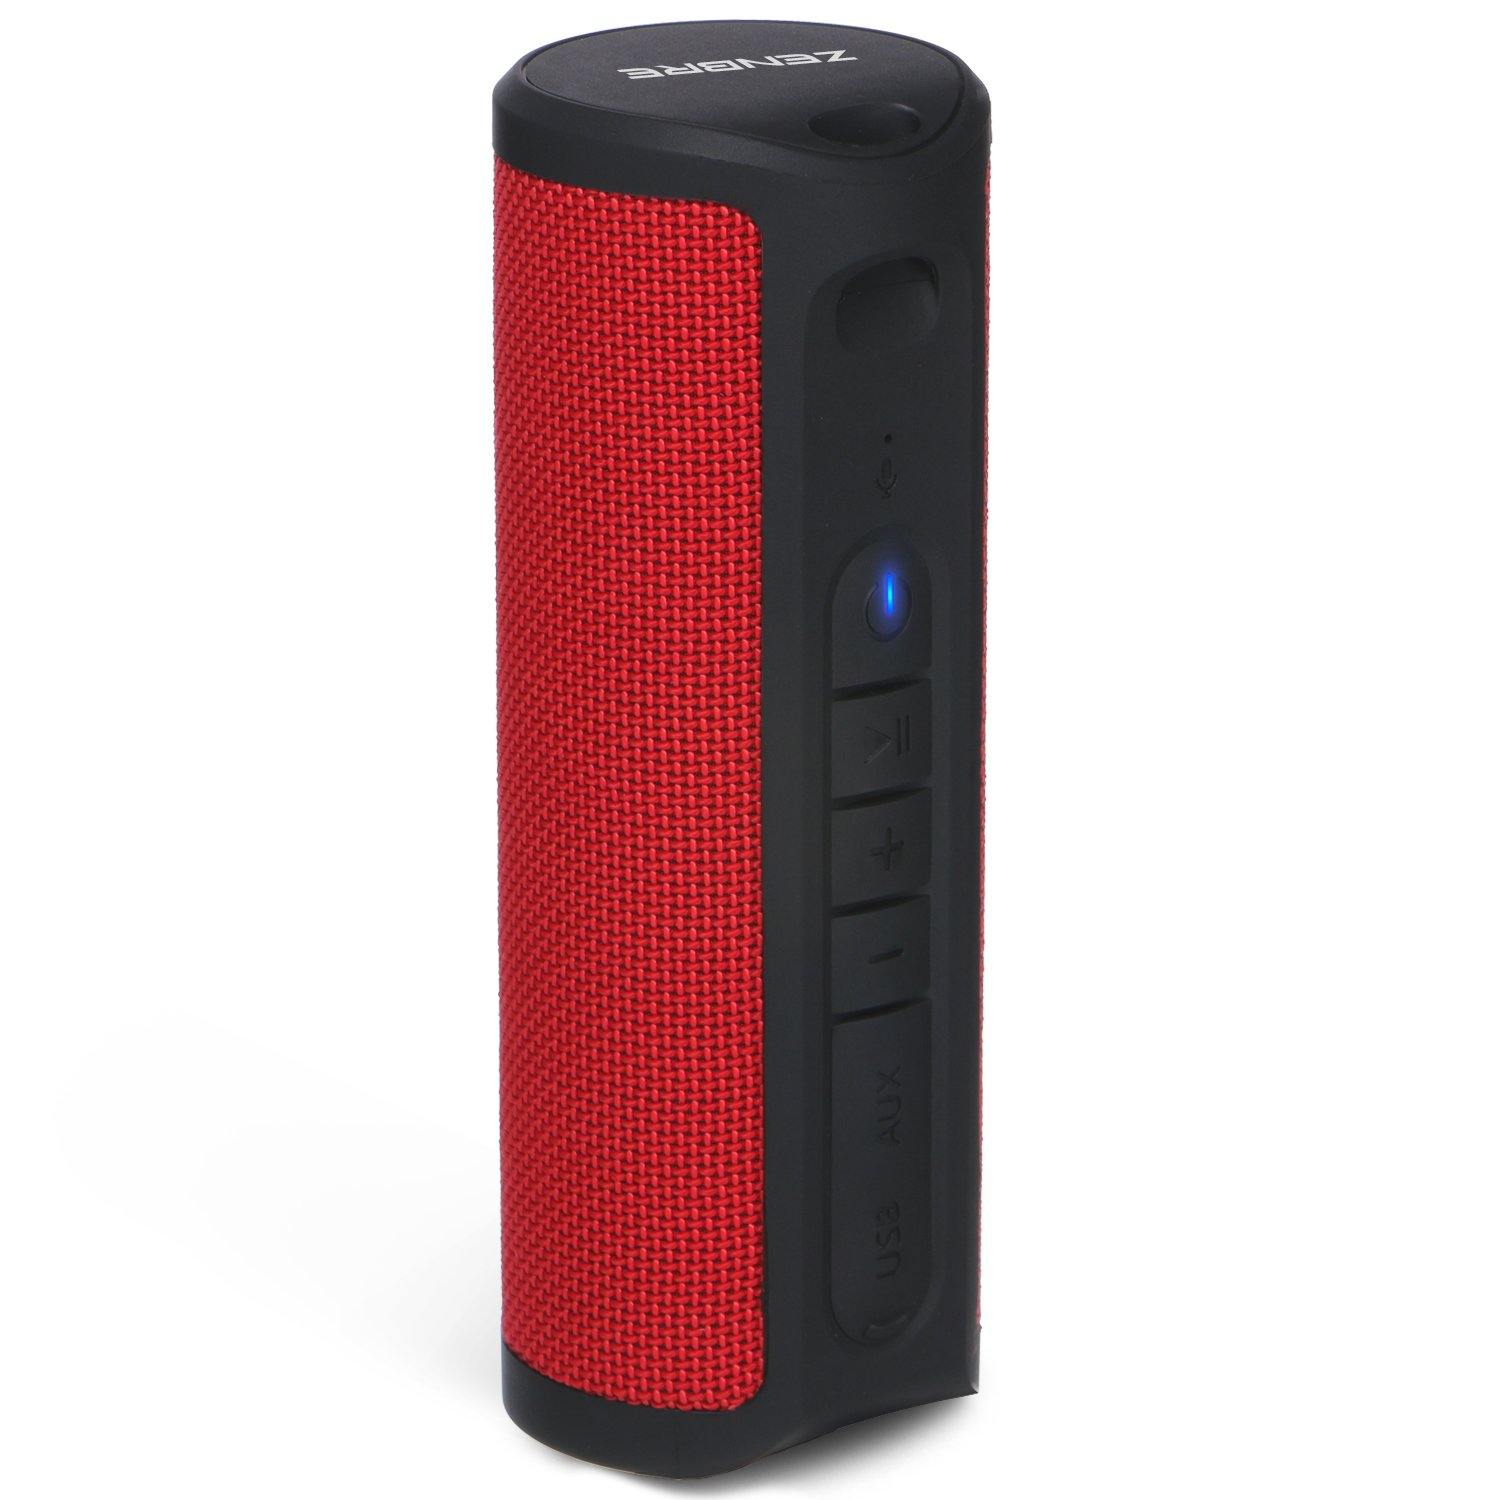 Bluetooth Speakers,ZENBRE Z4 True Wireless Stereo Waterproof IPX4 Speaker, Enhanced Bass with 2x5W Dual-Driver, Bluetooth 4.1 with 20h Play-time (Red) ZENBRE Technology